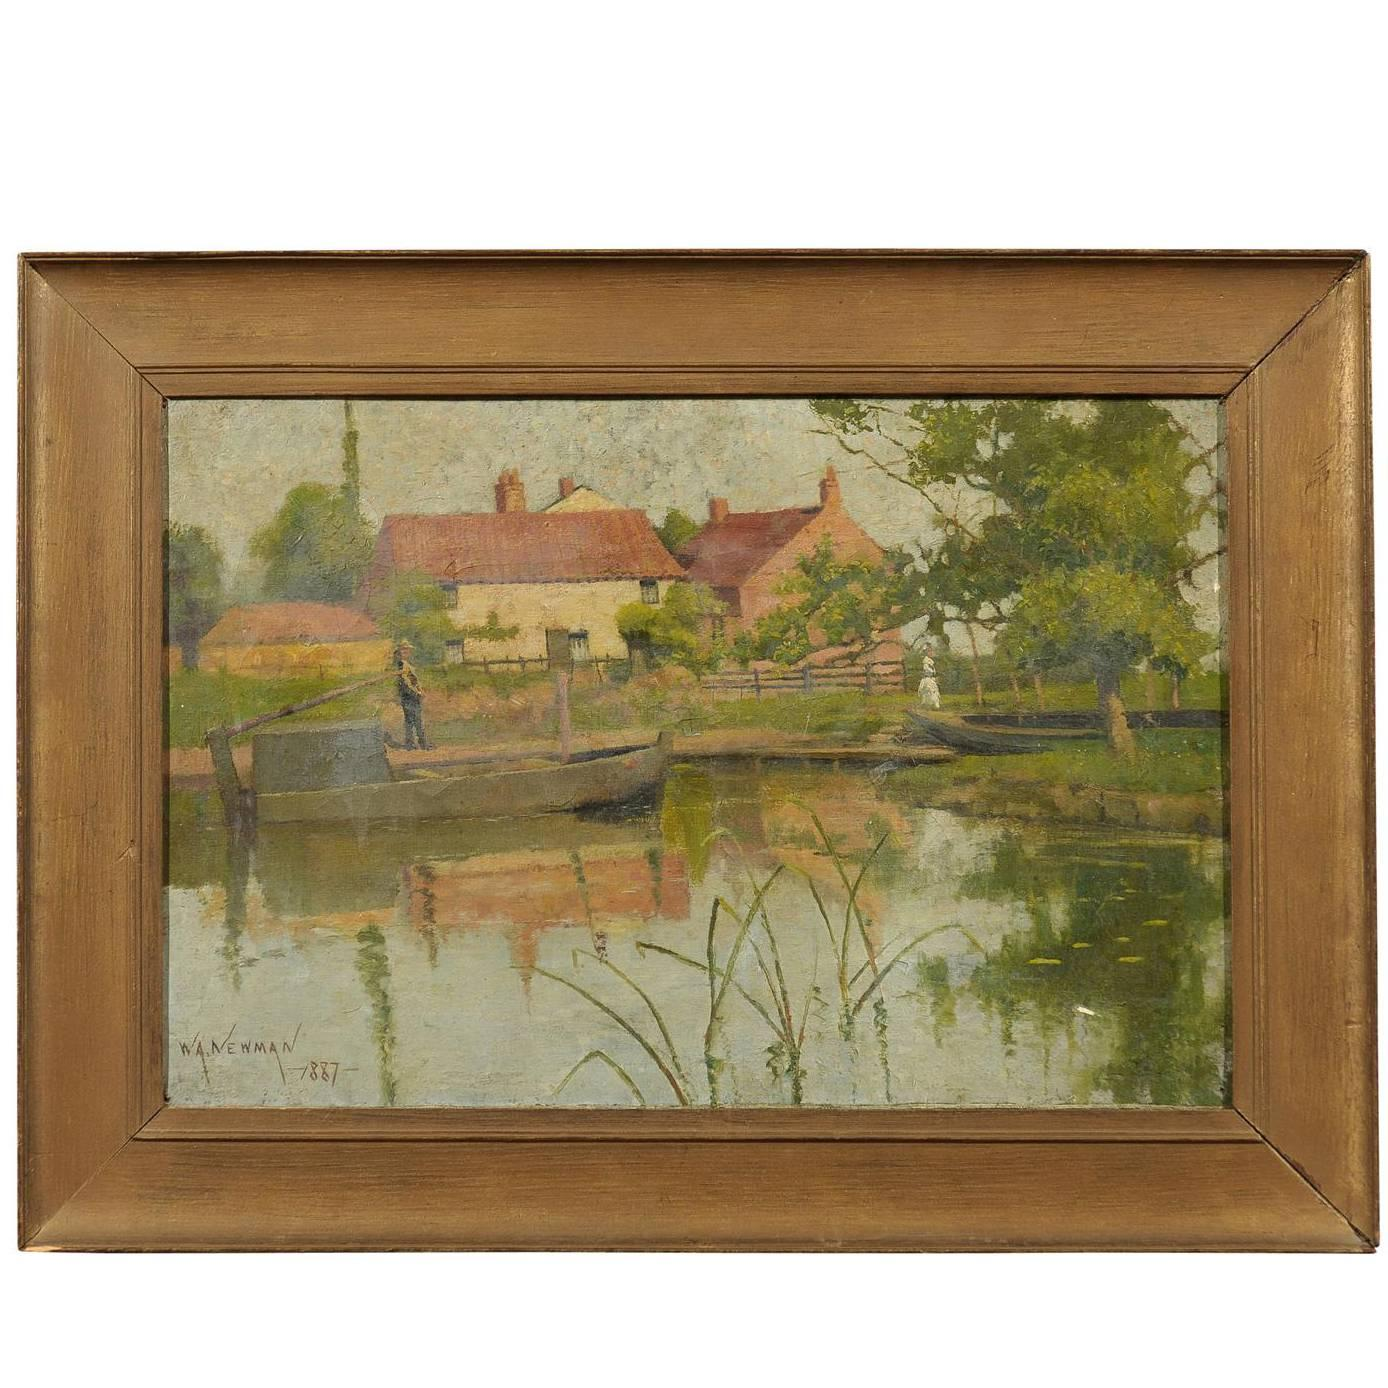 19th Century English Landscape Painting by W.A. Newman